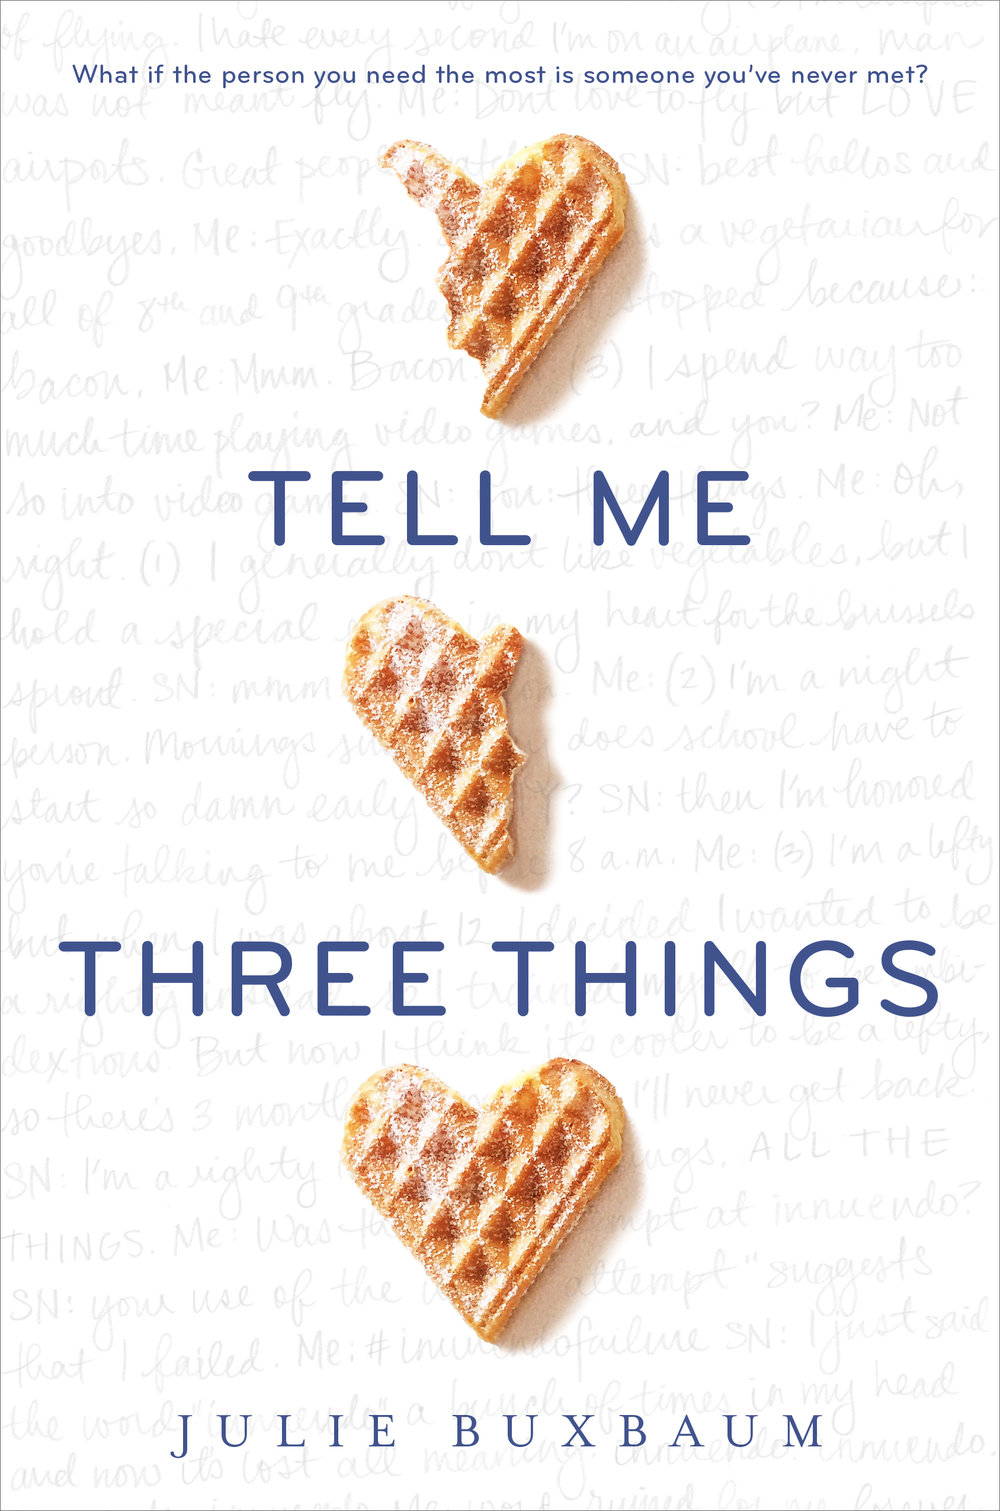 julie-buxbaum-tell-me-three-things.jpg